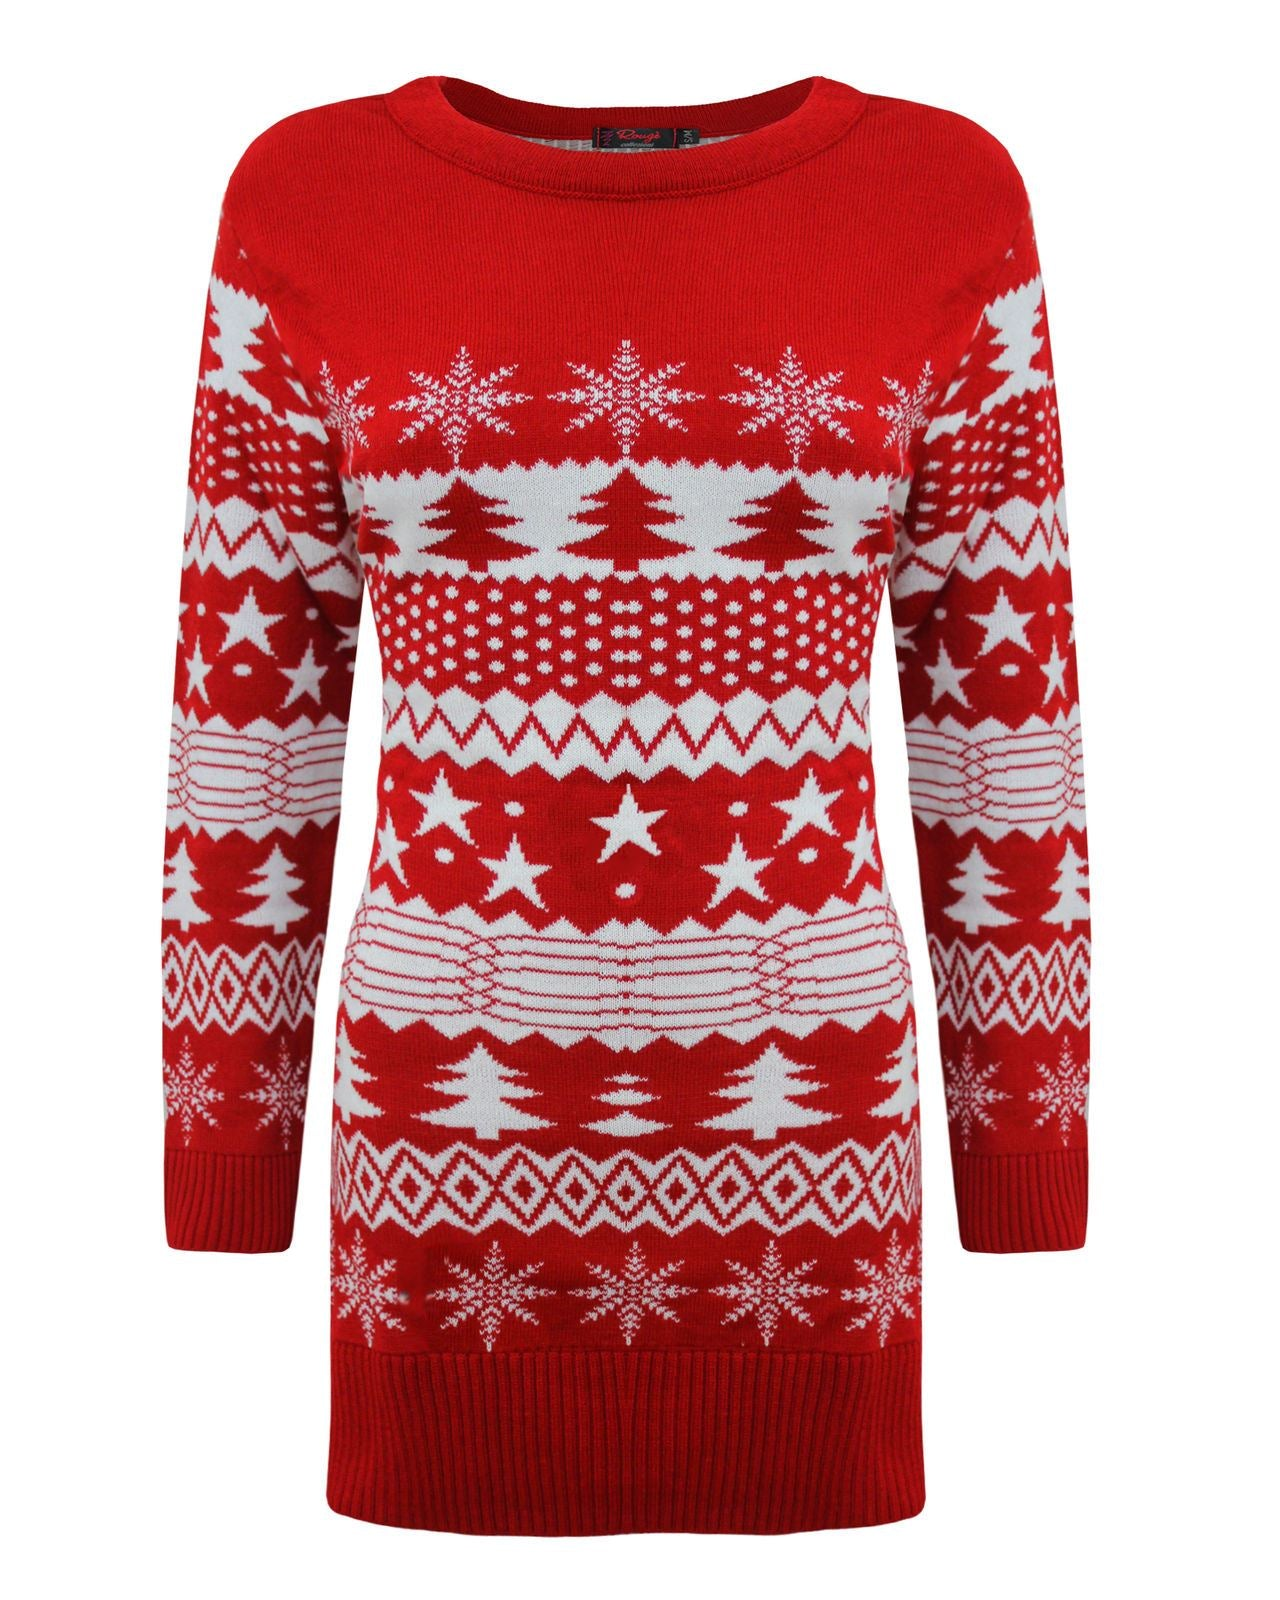 Ladies Womens Knitted Christmas Xmas Tree Fairisle Novelty Jumper Top Dress 8-16